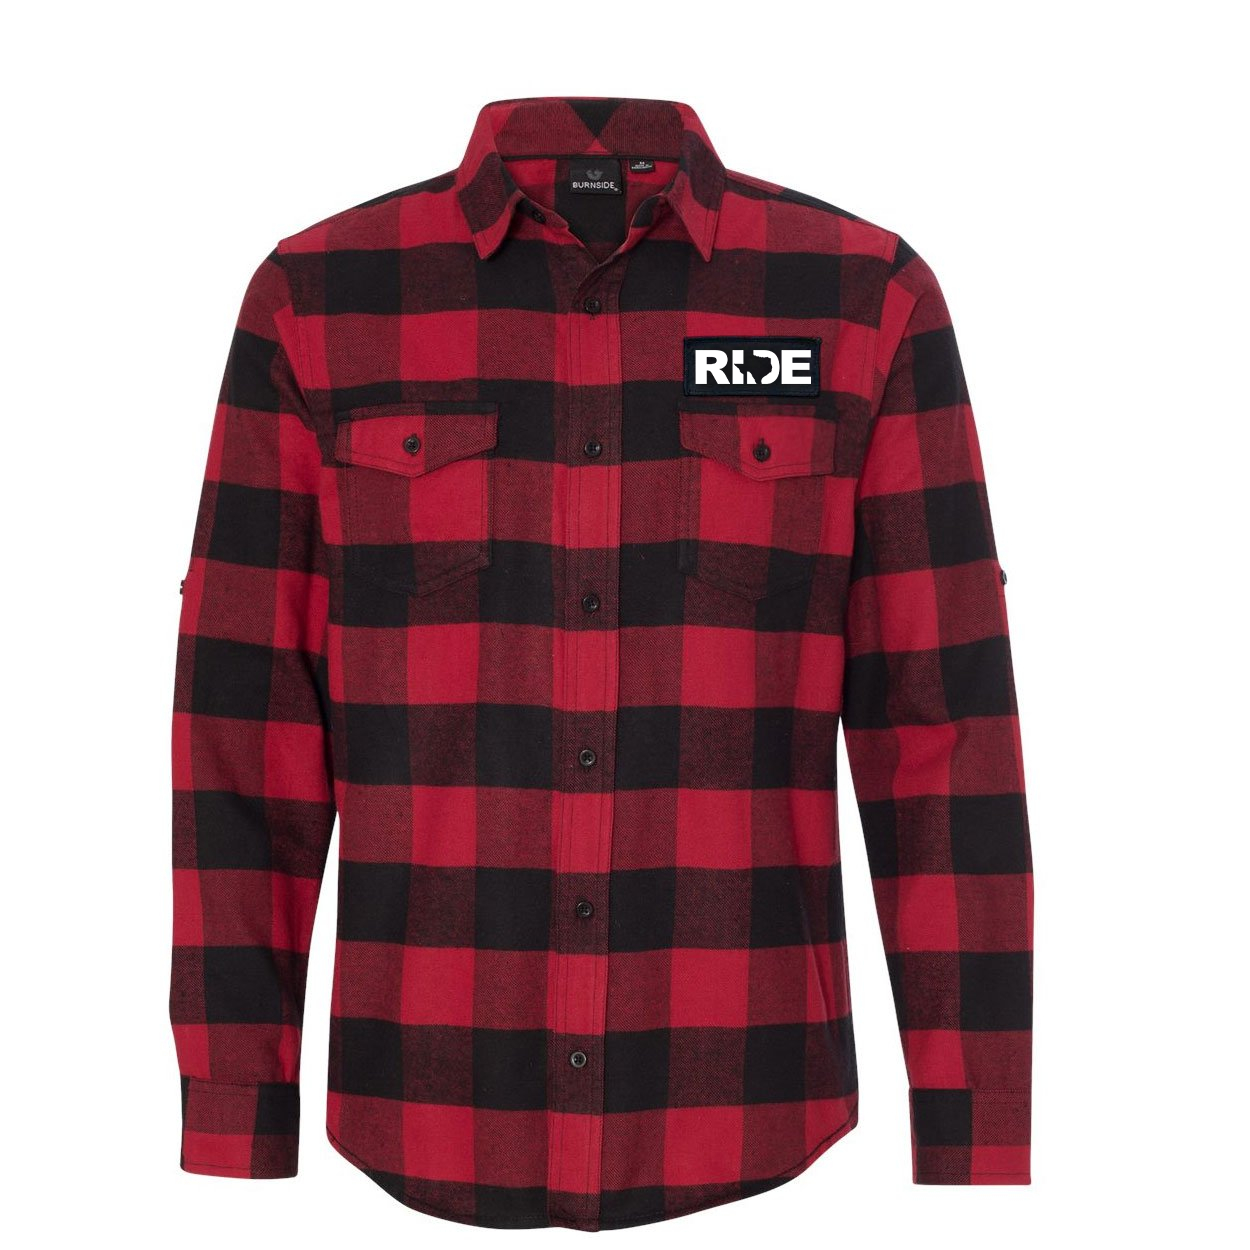 Ride Texas Classic Unisex Long Sleeve Woven Patch Flannel Shirt Red/Black Buffalo (White Logo)